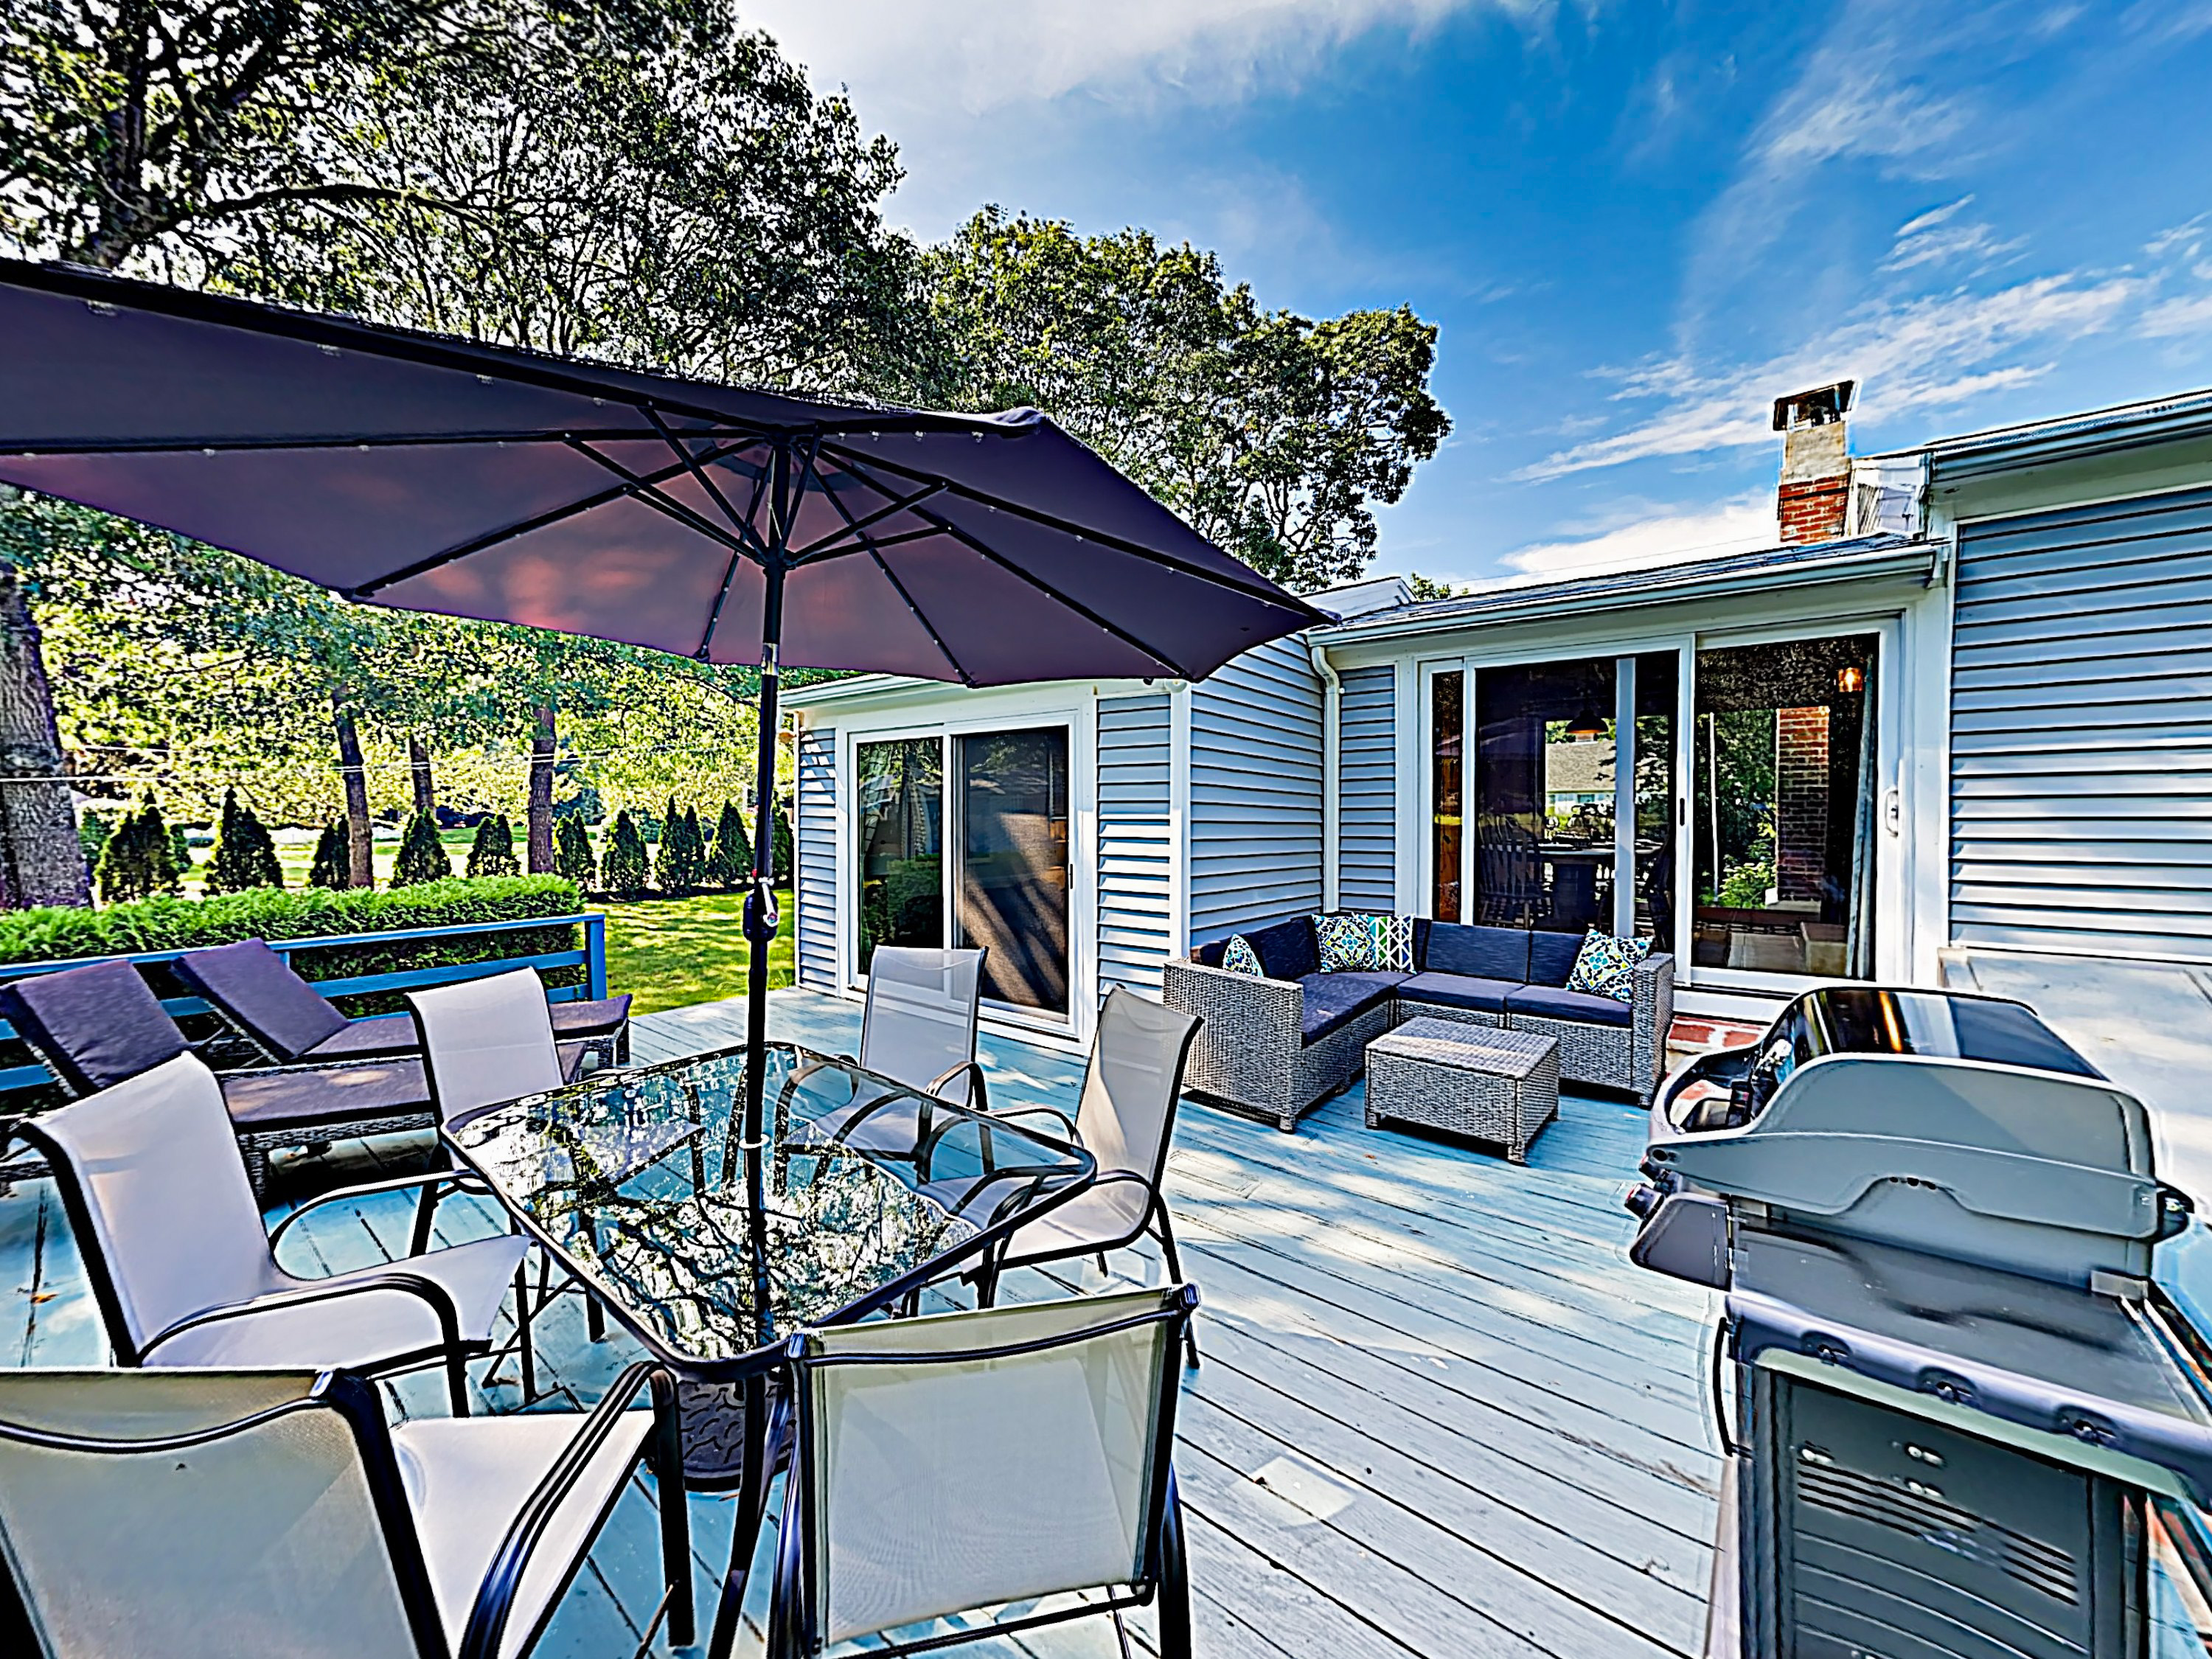 South Yarmouth MA Vacation Rental Welcome to The